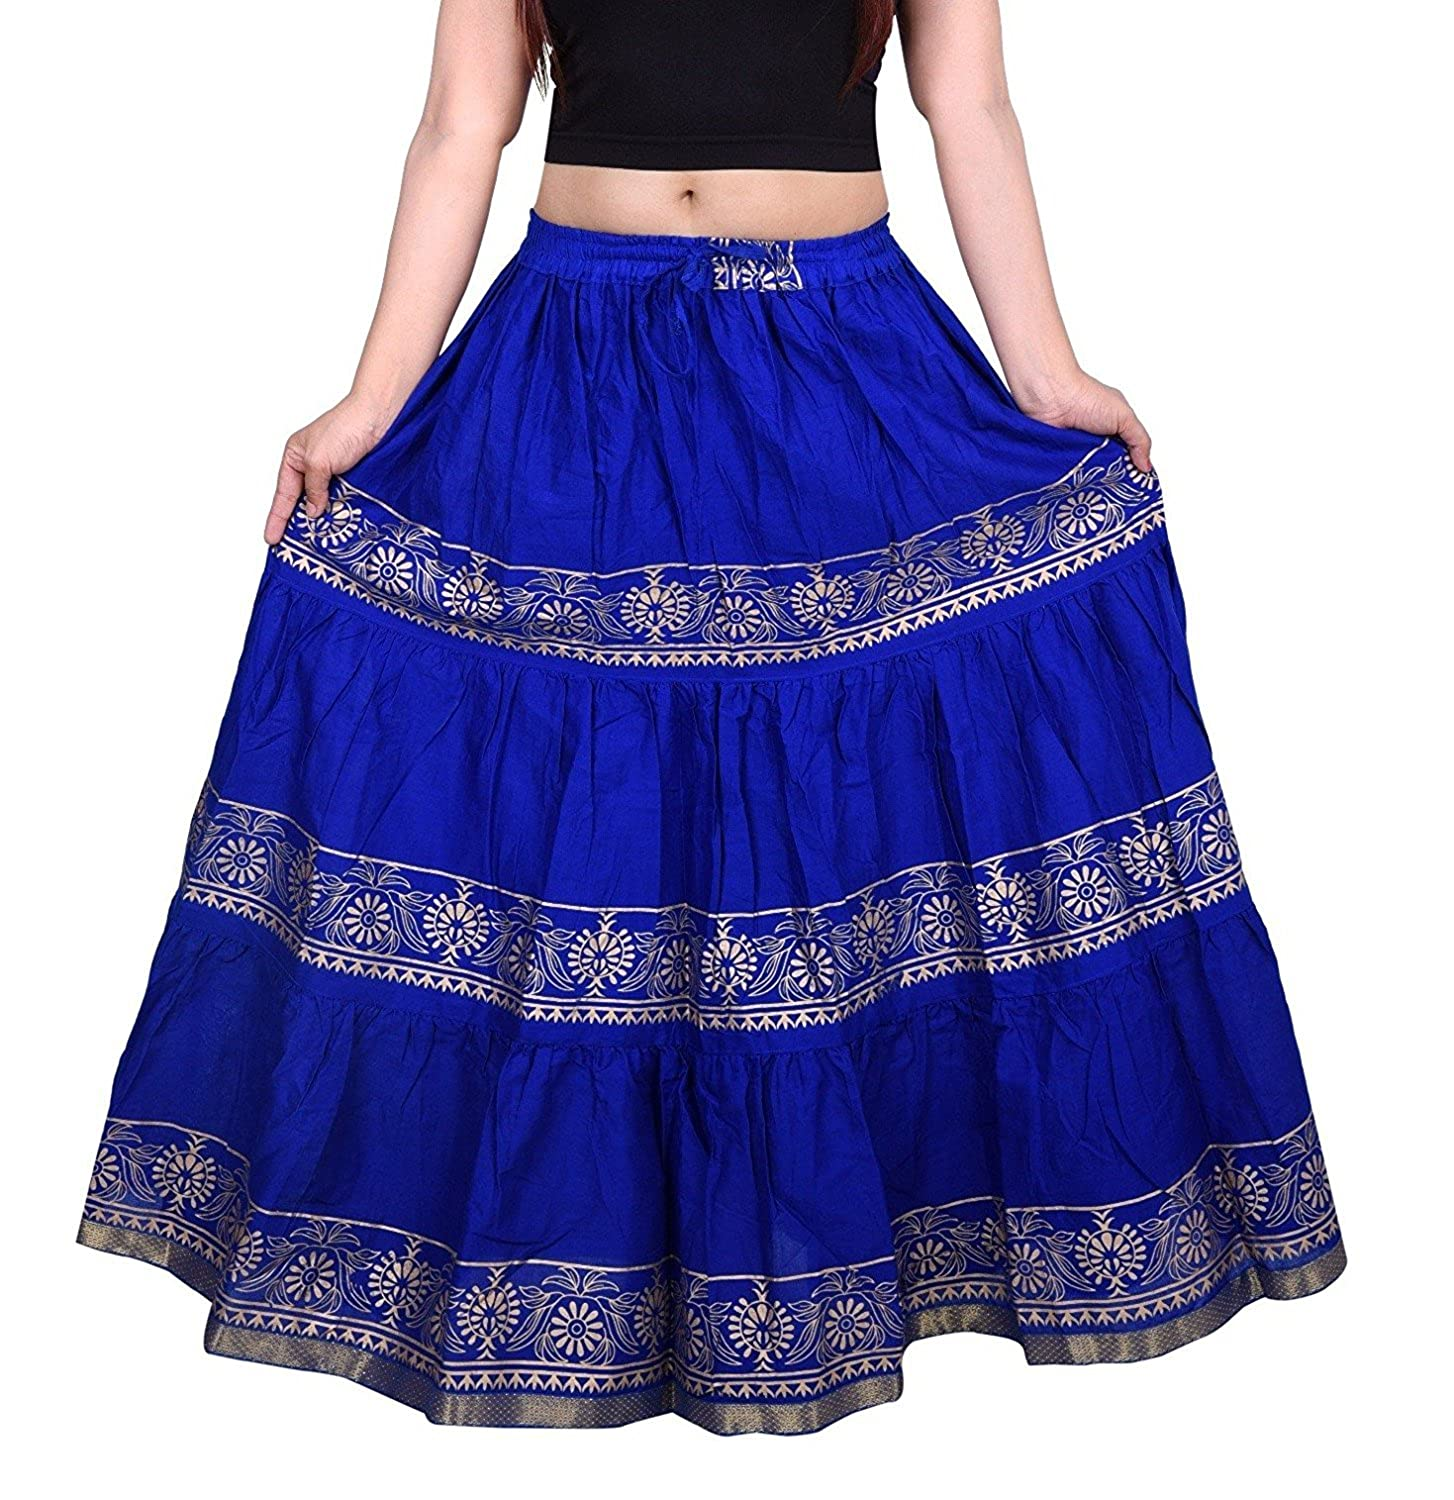 The Jaipur Bazar Women's Cotton Printed Long Skirt (TJBSKRT-553, Blue, Free Size)